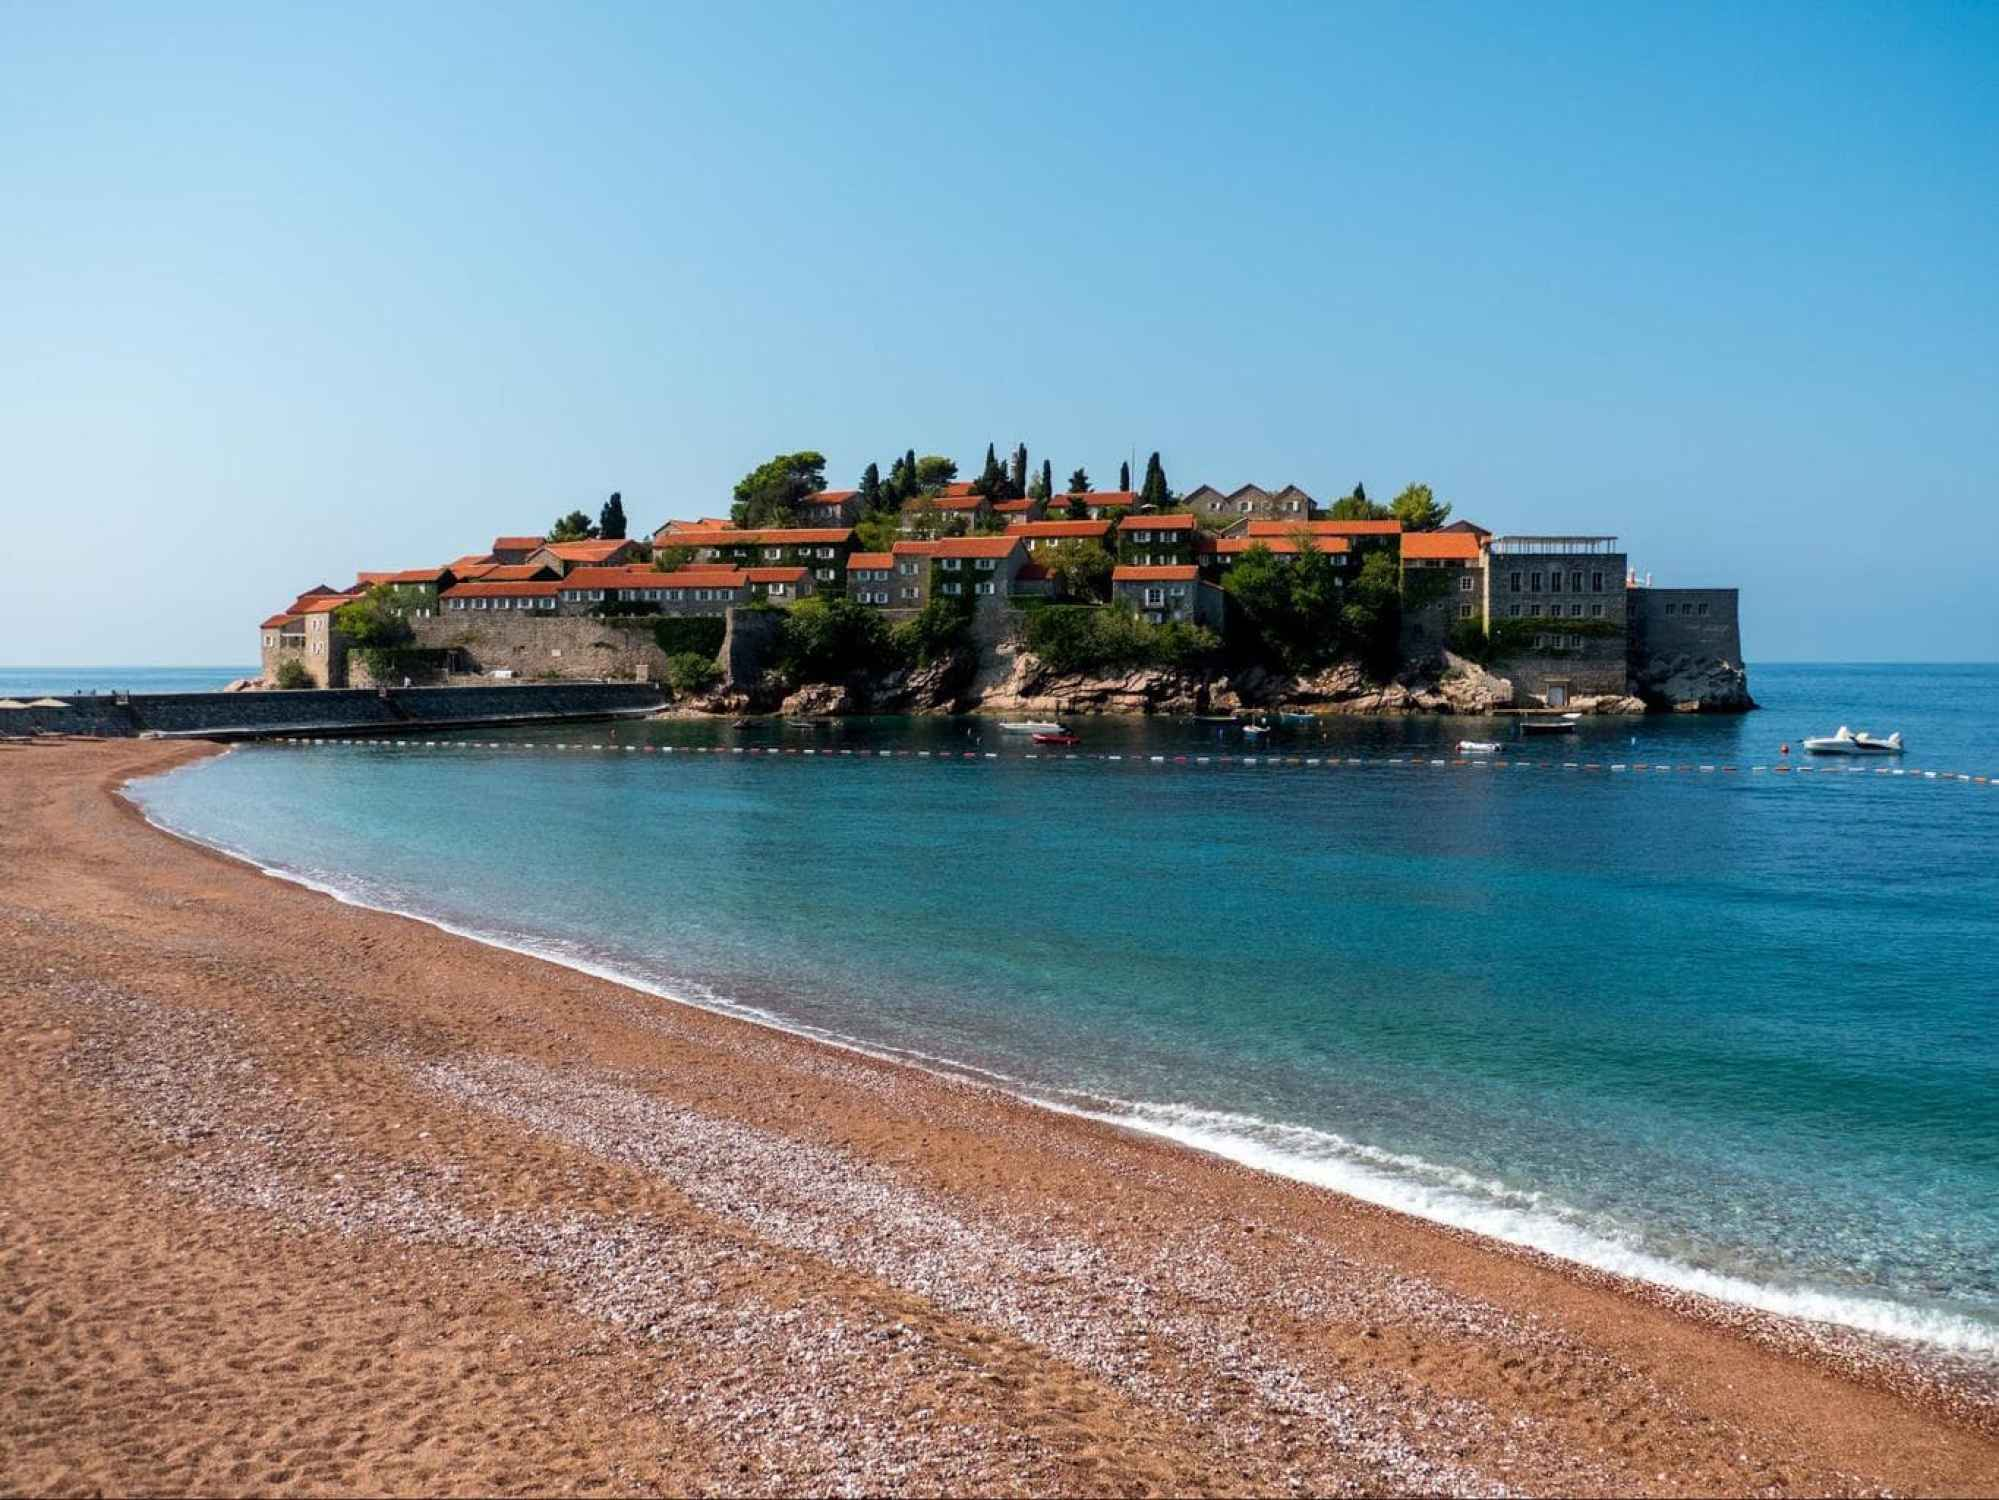 Sveti Stefan beach right in front of the island